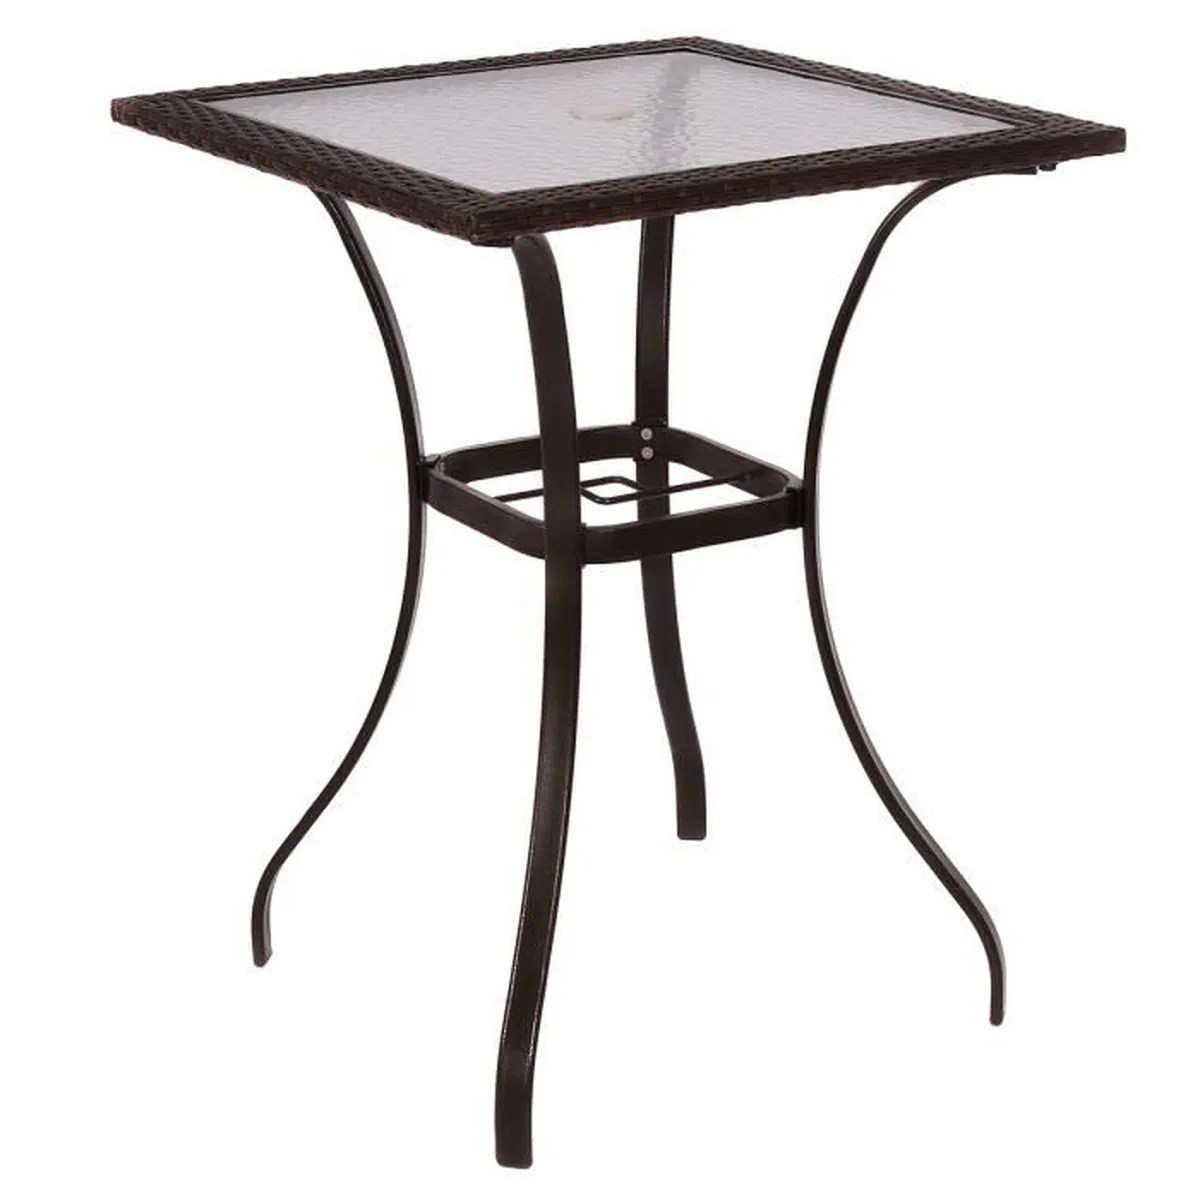 Table De Jardin En Rotin Tables Meubles Poly Rotin De Jardin Achat Vente Table